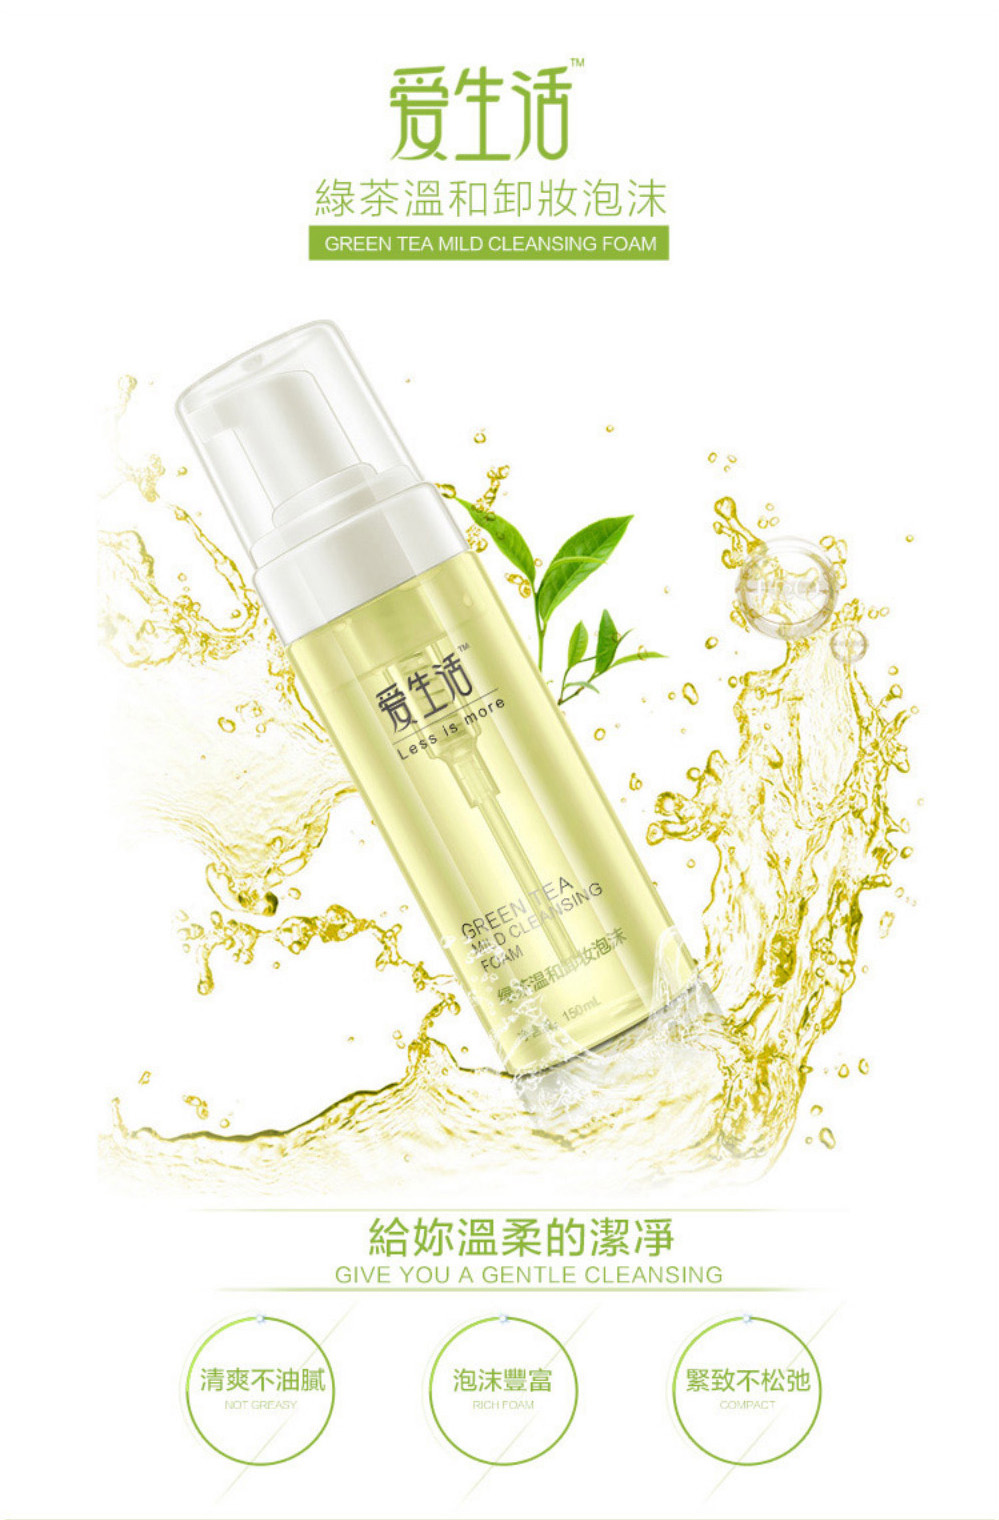 150ml_Green_Tea_Mild_Cleansing_Foam_Page_01_Image_0001